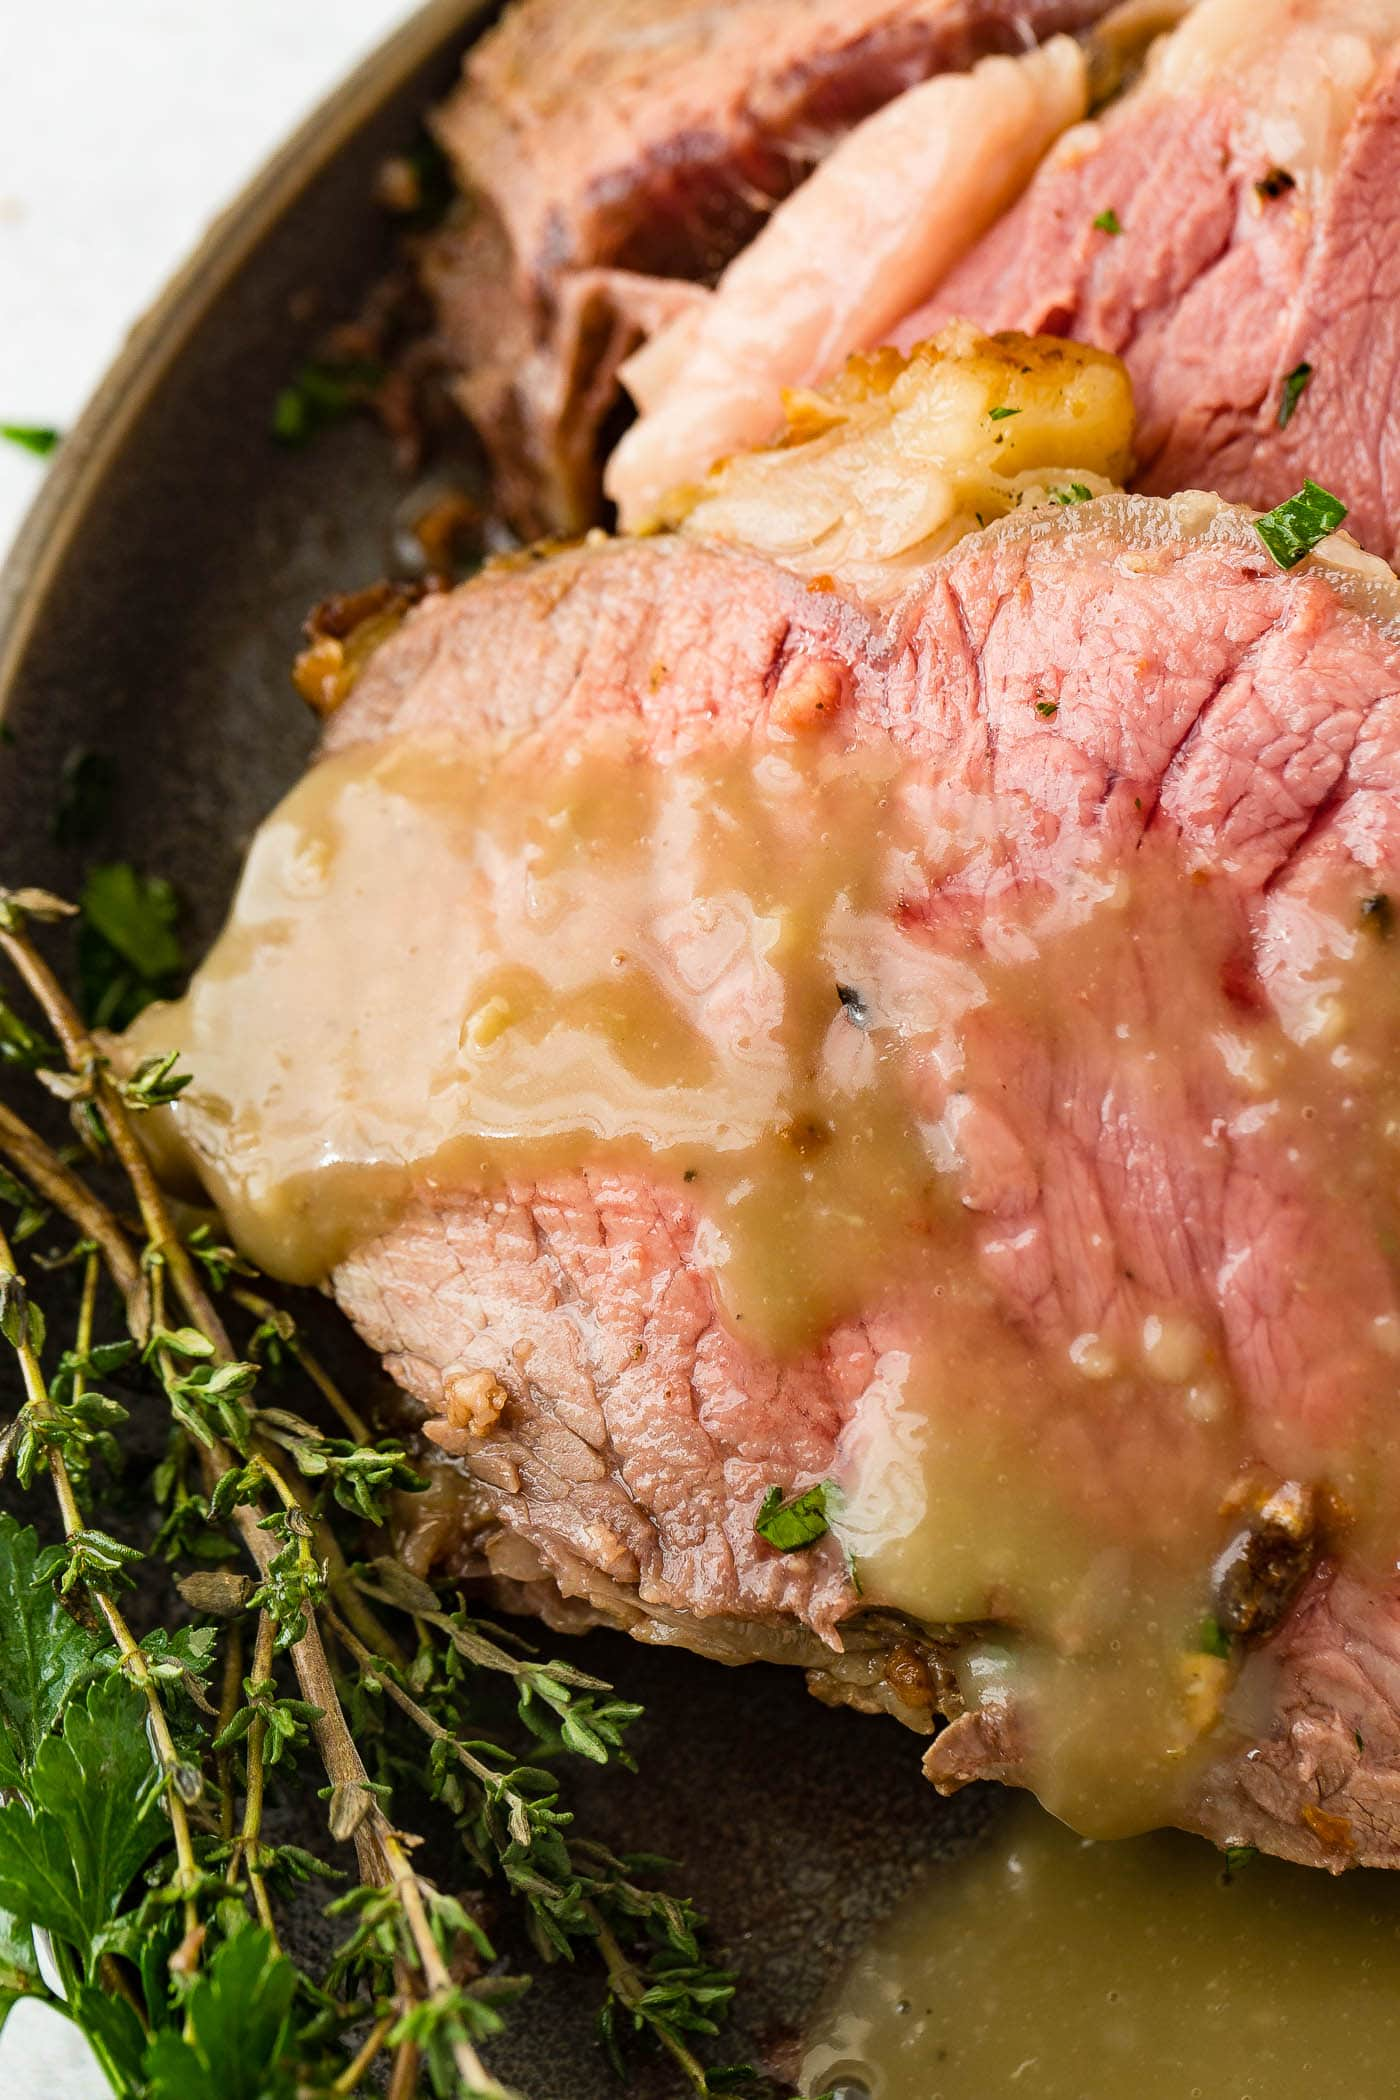 A photo of a slice of instant pot prime rib covered in delicious gravy.